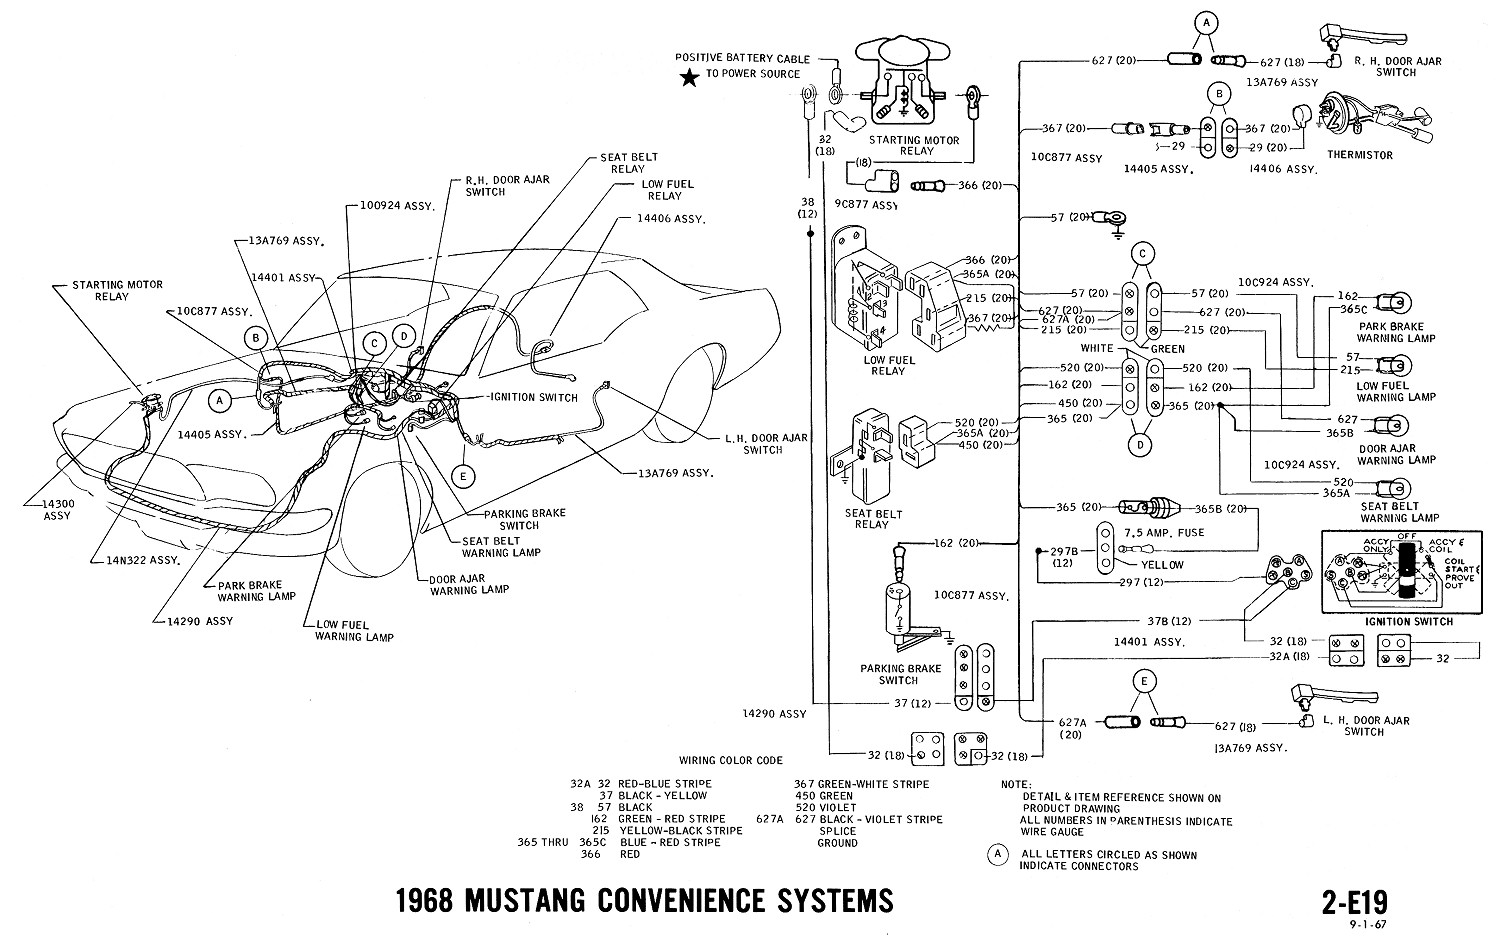 1970 Mustang Headlight Wiring Diagram Opinions About 2012 Dodge Ram 2500 1968 Diagrams And Vacuum Schematics Average Joe Restoration 1969 Gto Switch